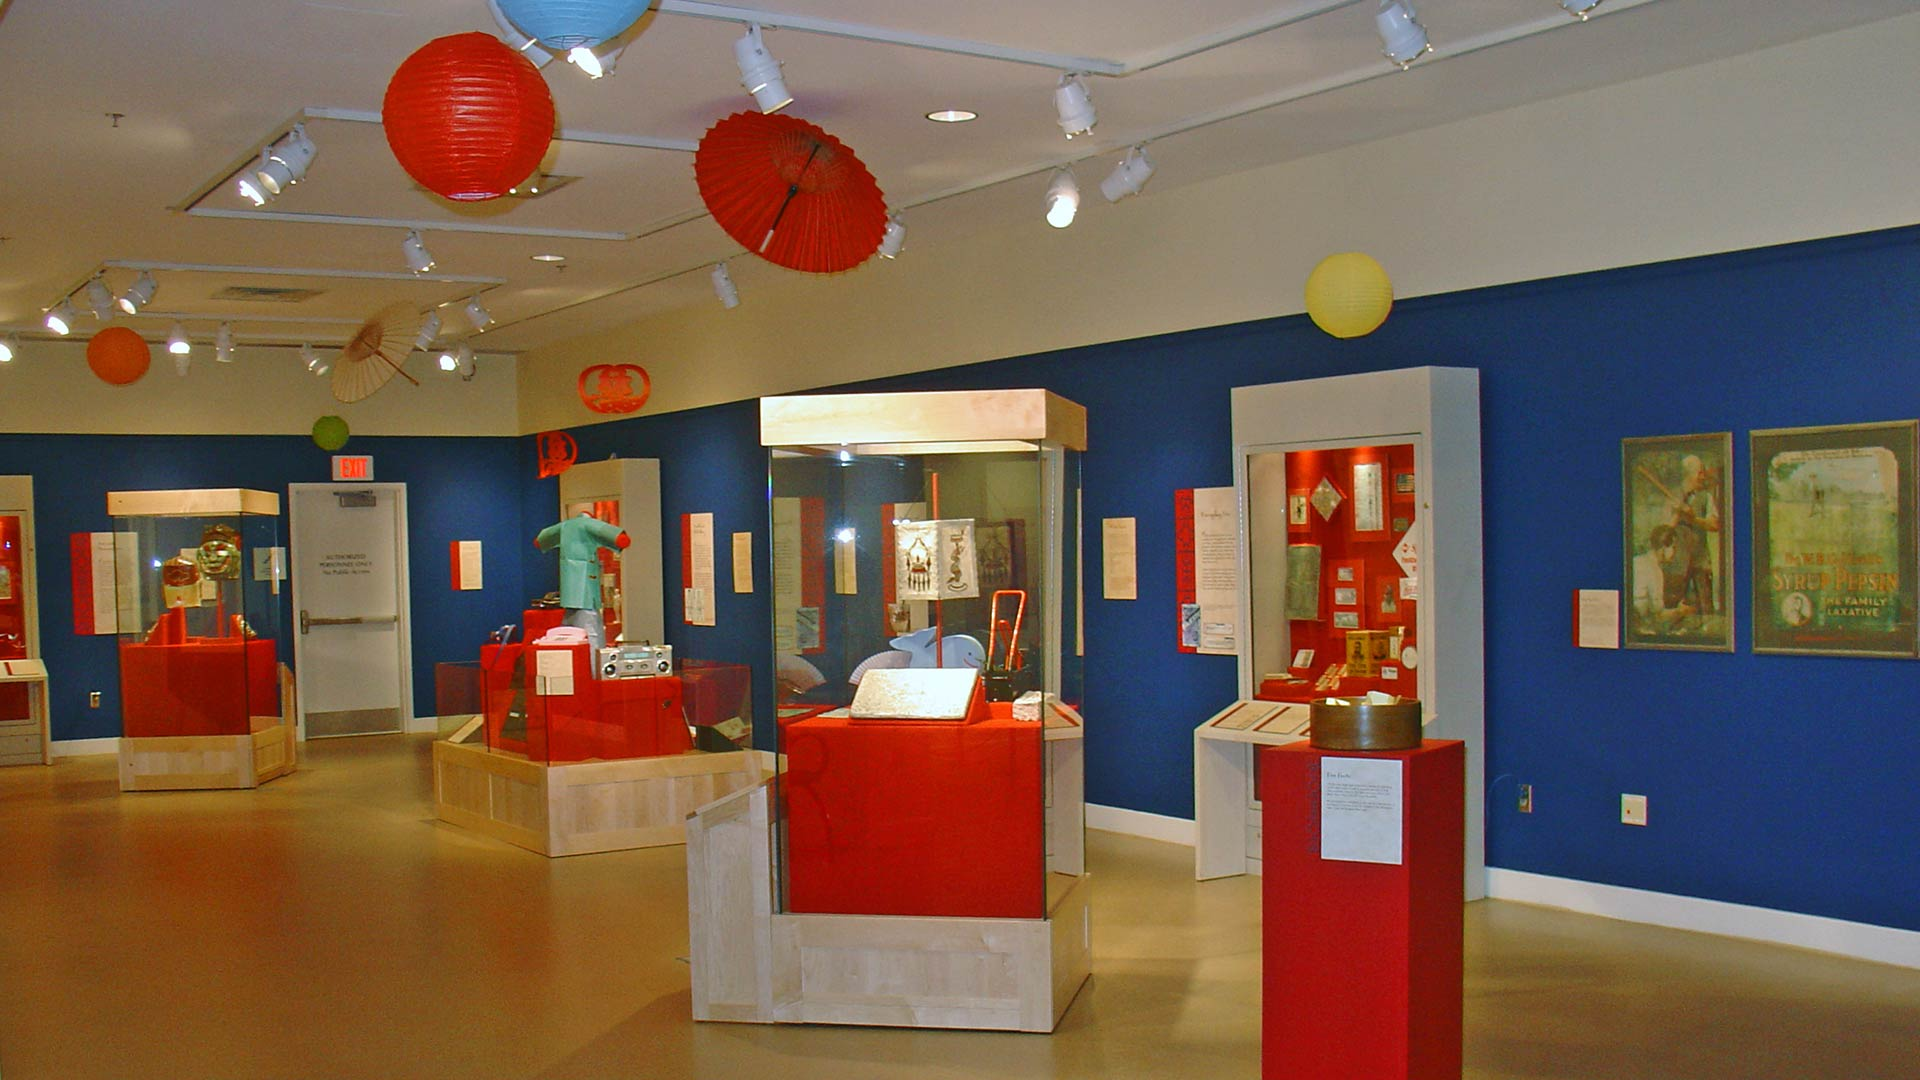 gallery overview, red paper lantern and umbrella, ocean blue walls, display stands